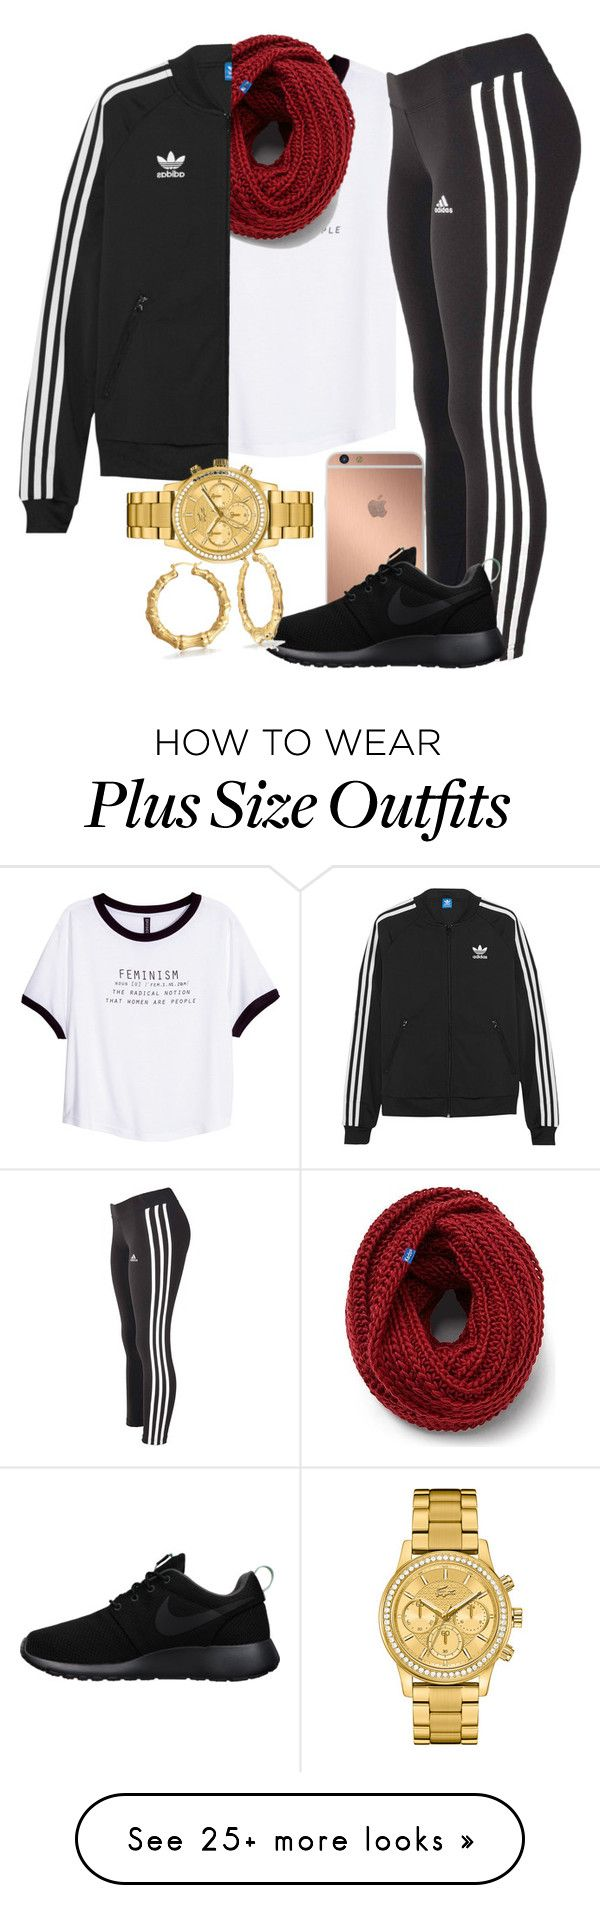 Untitled #31 by thetruthdoesnothavetohurt on Polyvore featuring H&M, adidas…